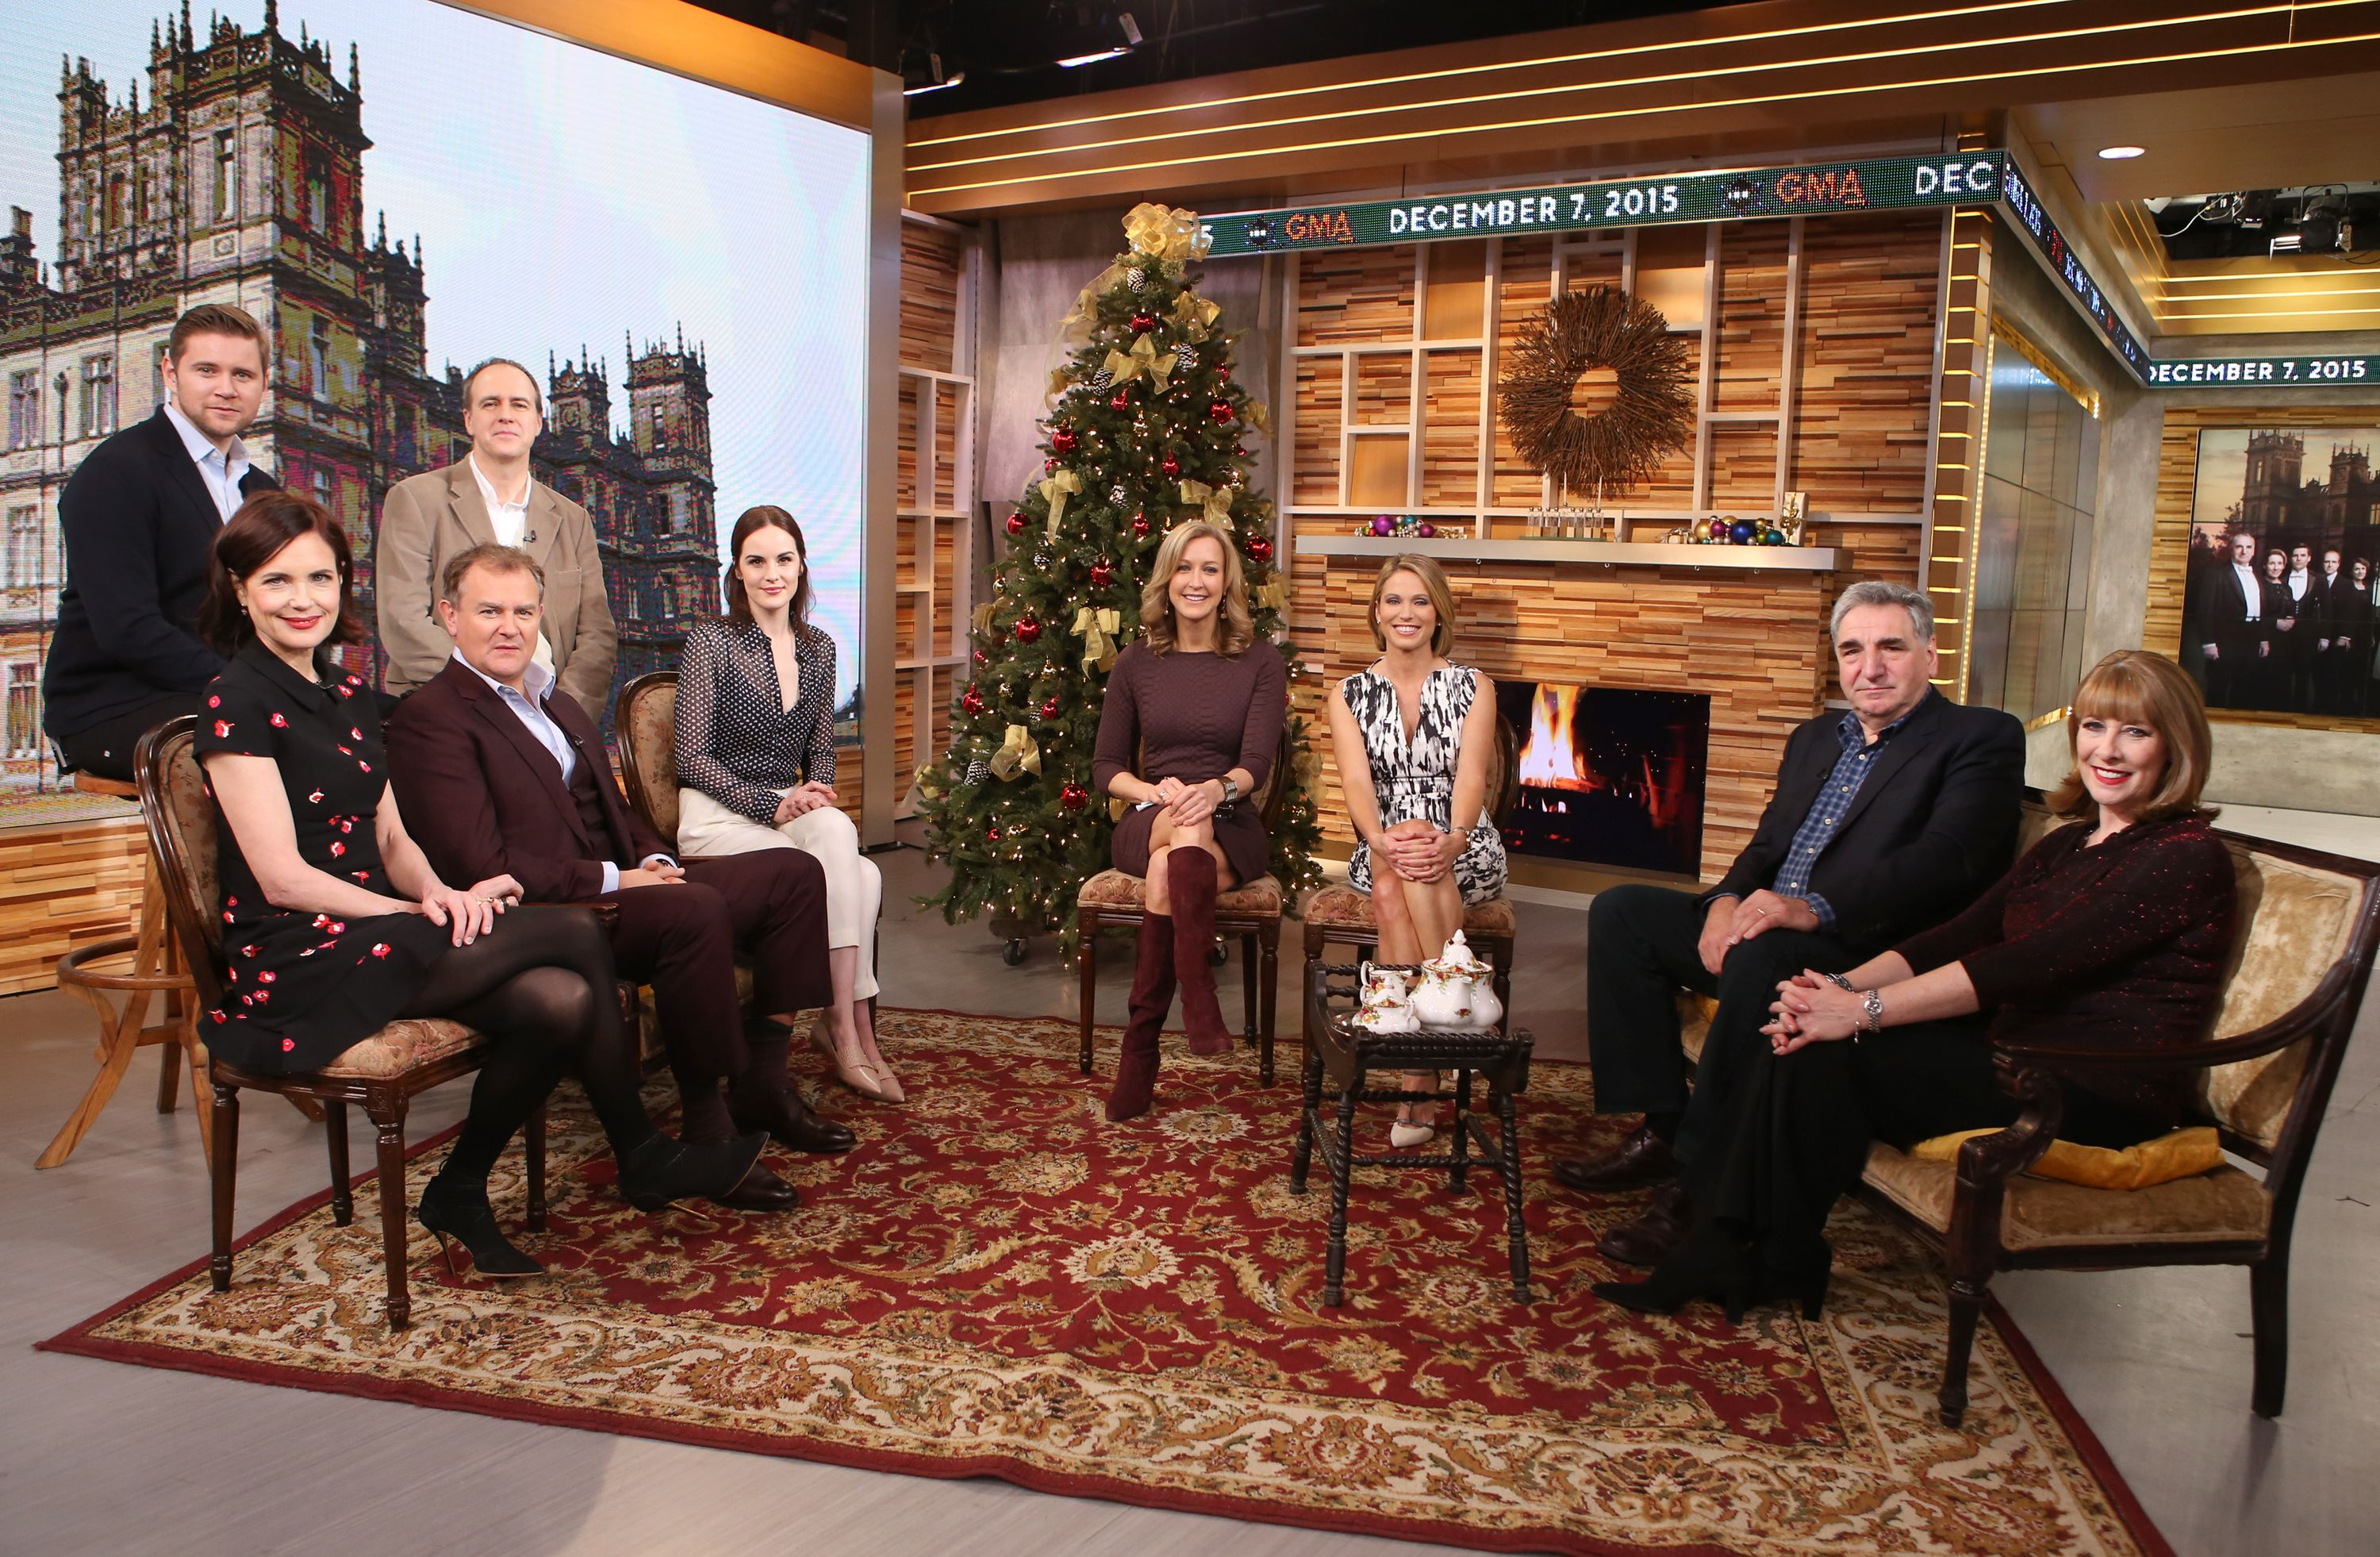 Downton Cast at Good Morning America Dec 2015